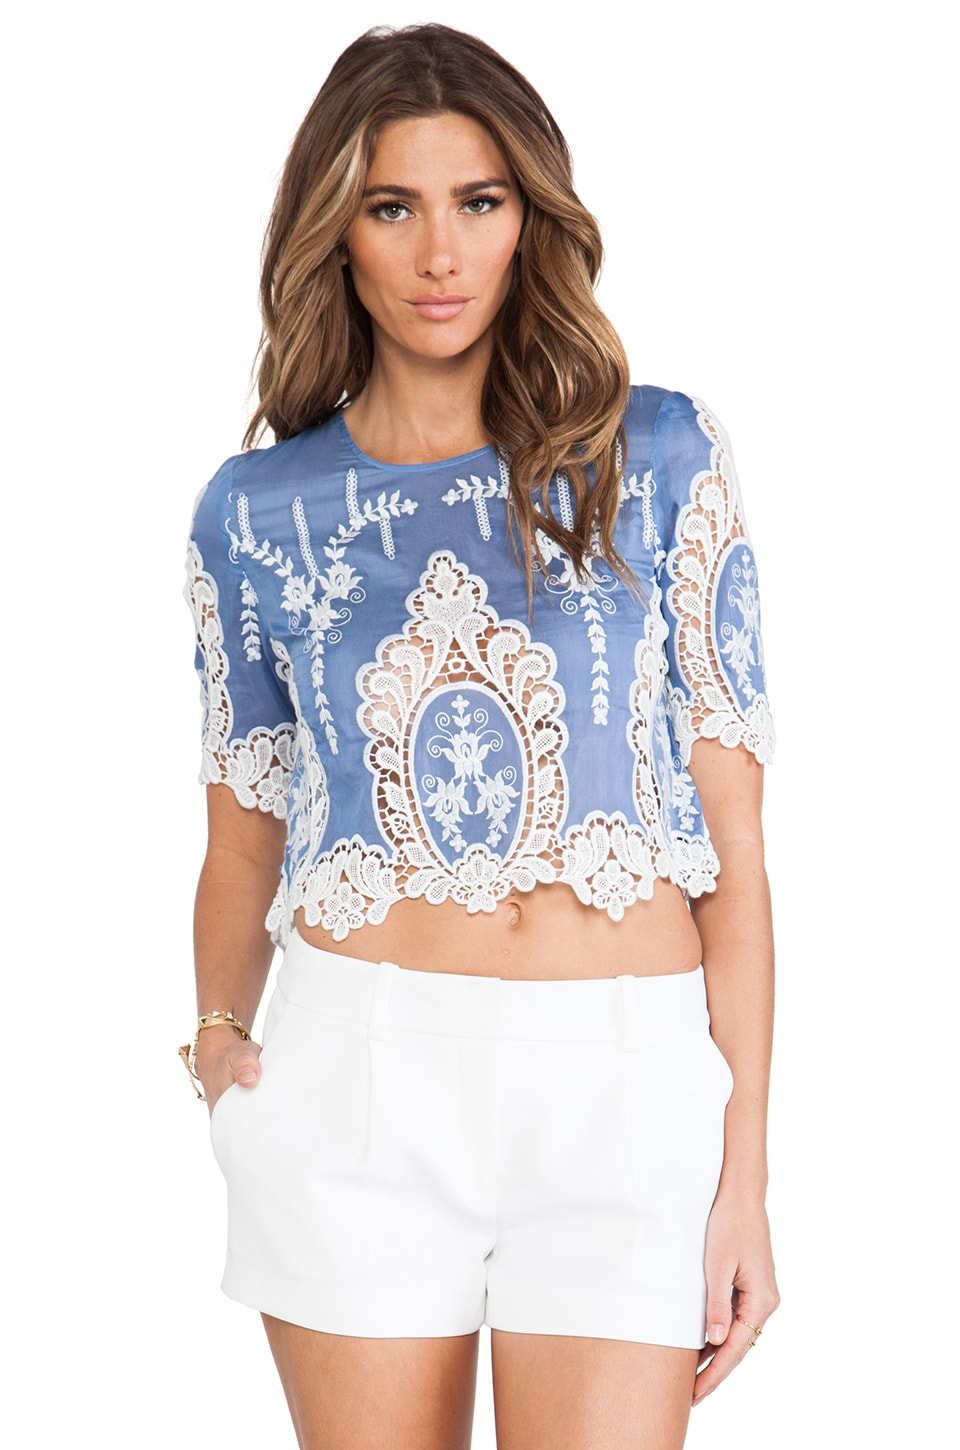 Dolce Vita Deanna Top in Dusty Blue